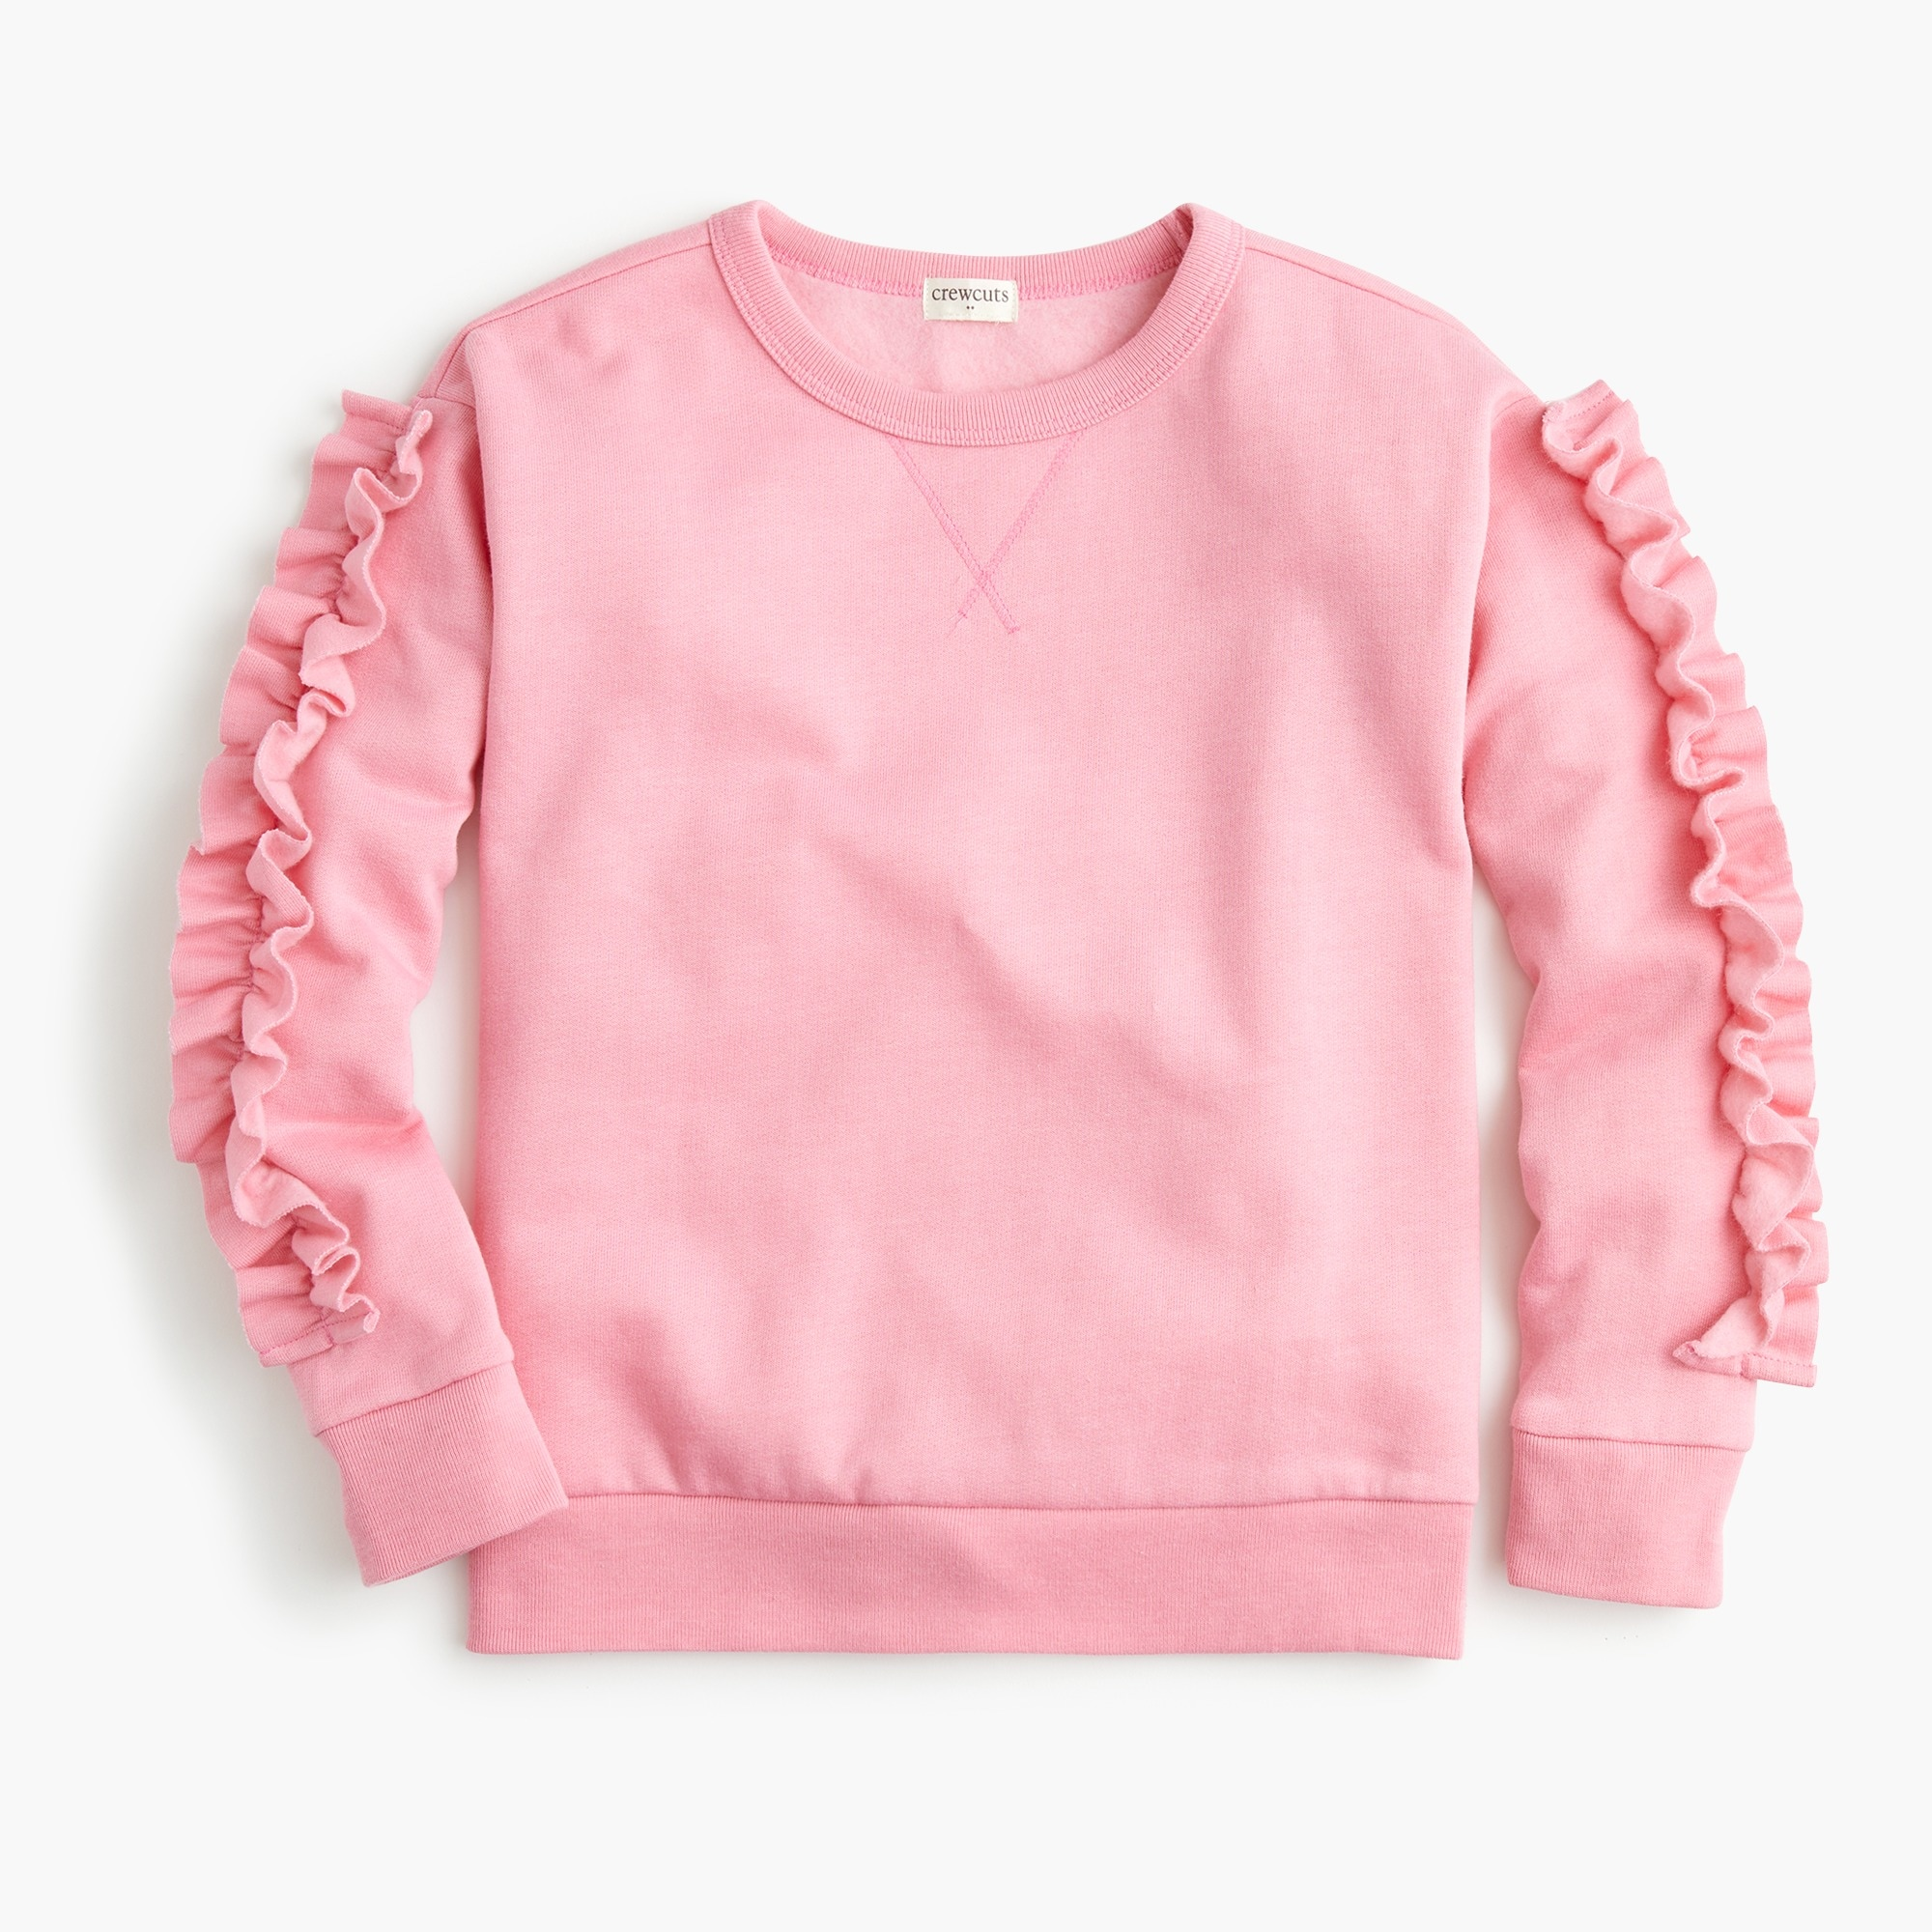 girls Girls' sweatshirt with ruffle-trimmed sleeves